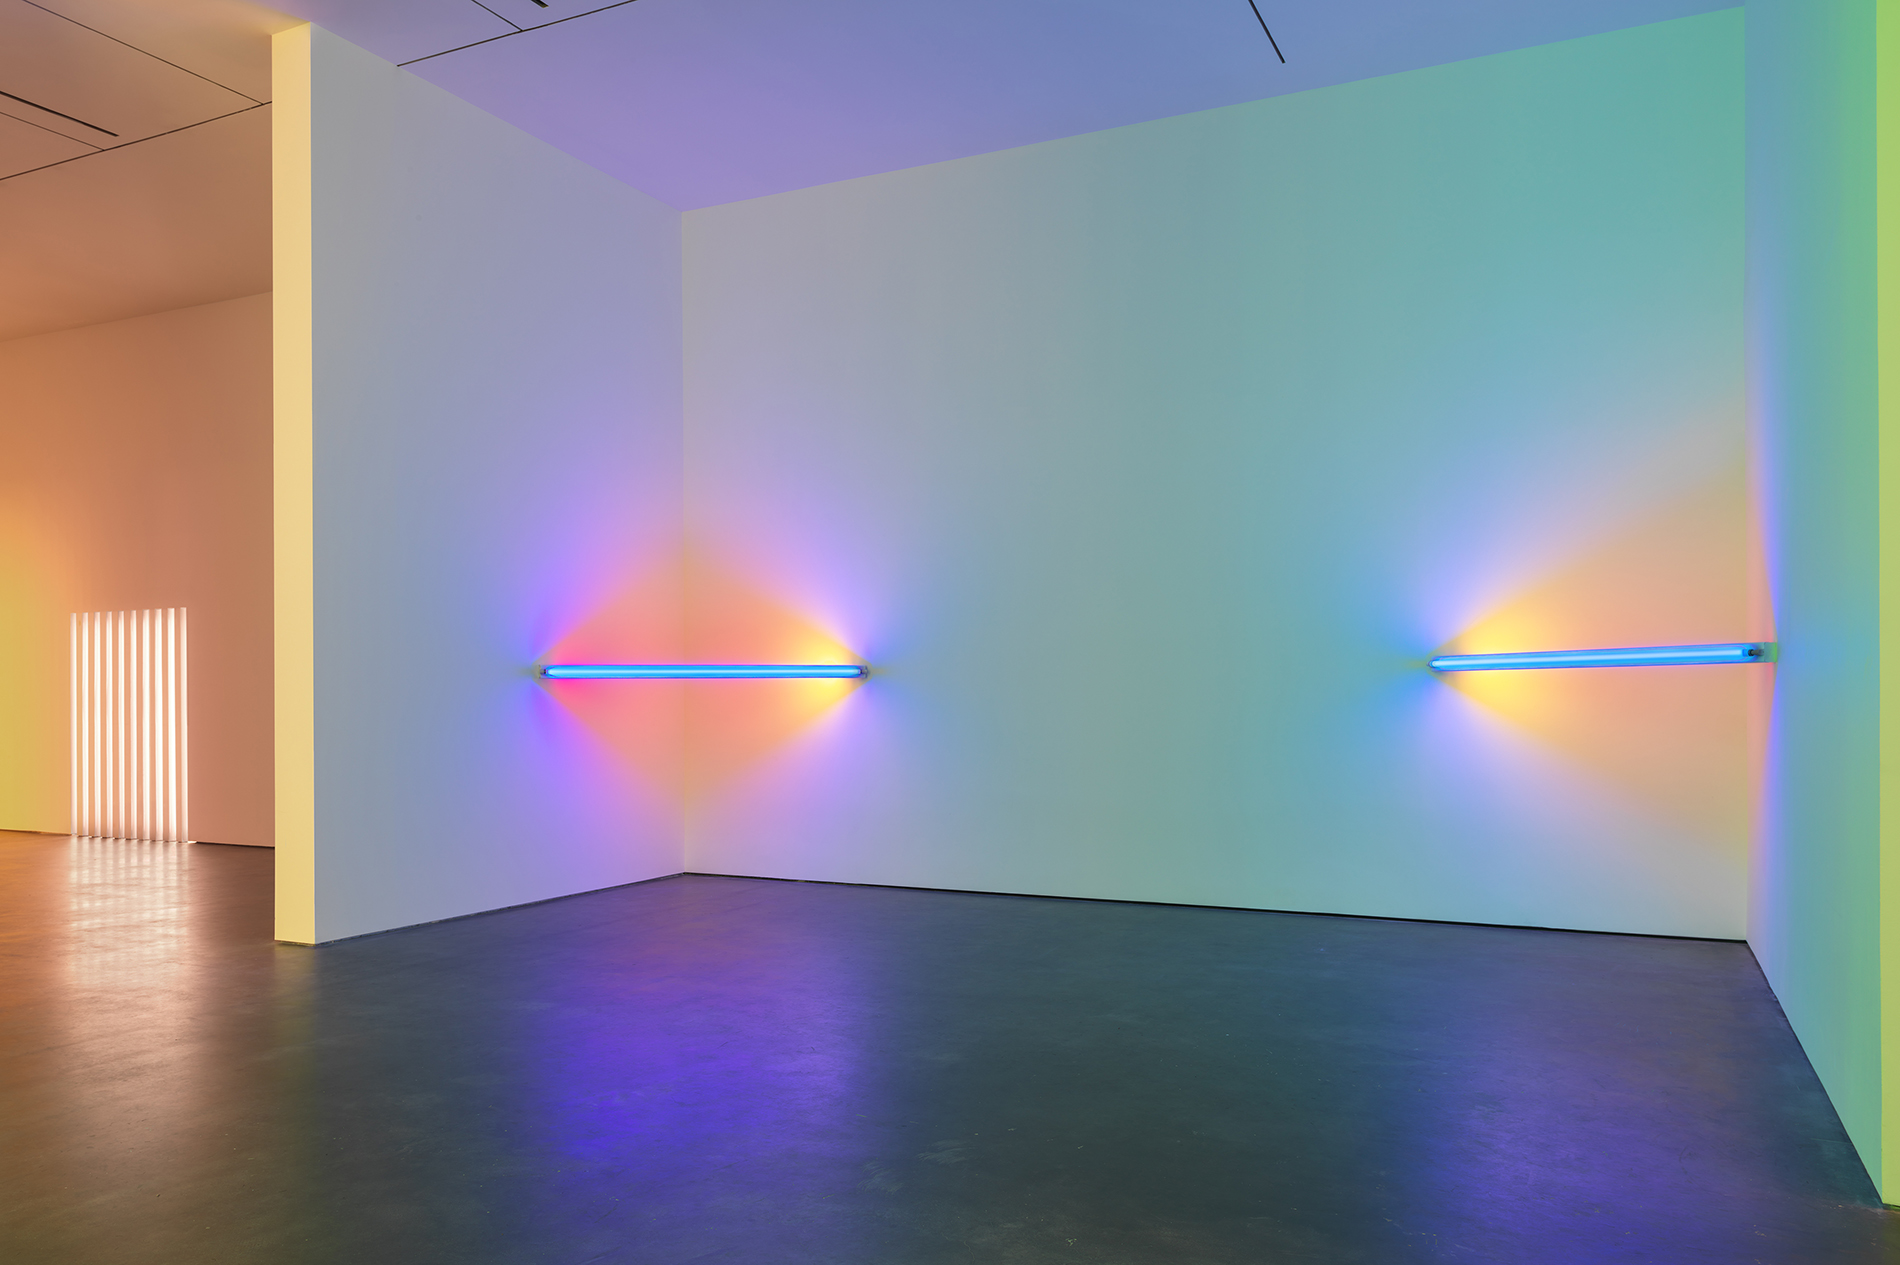 Dan Flavin: Dimensions of light